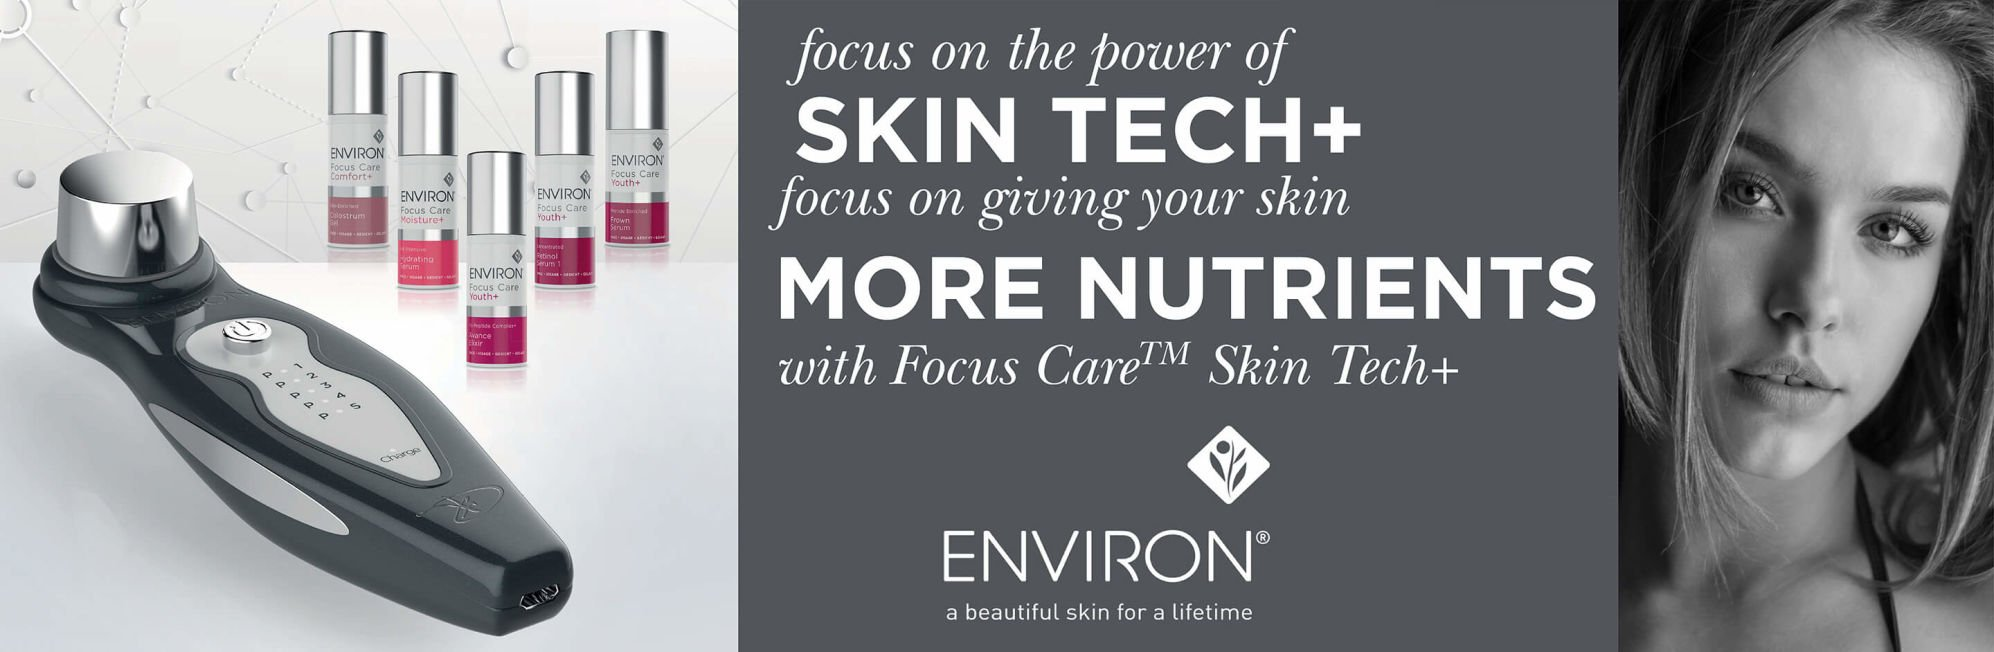 Environ Skin Technology